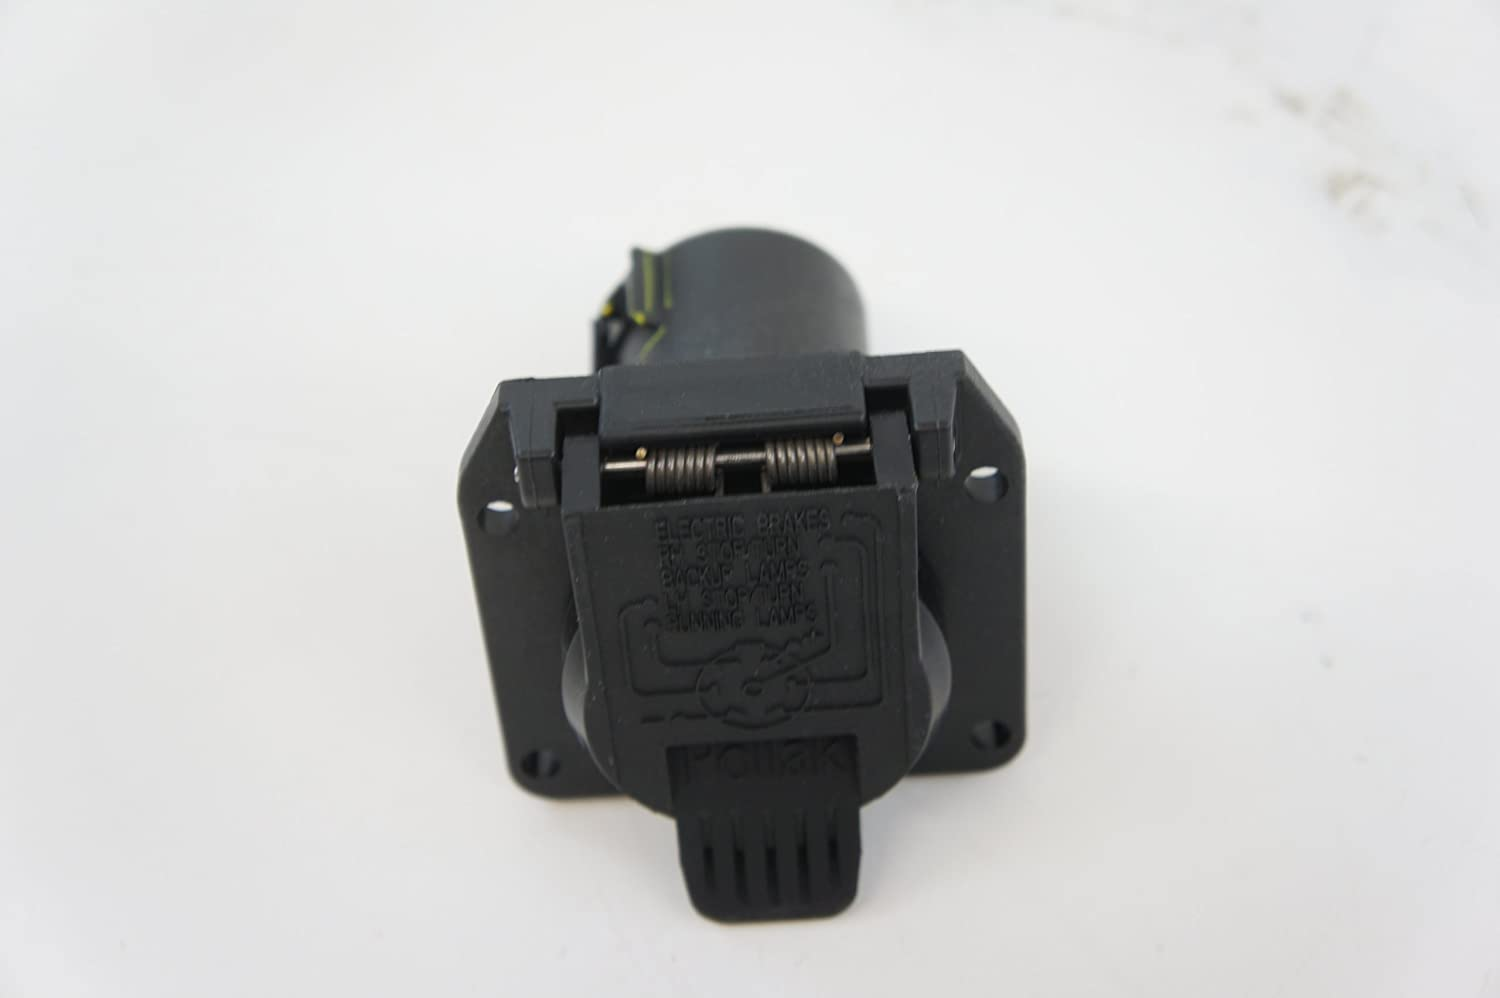 Genuine Audi Accessories 4l0055305u 7 Pin Towing Q7 Trailer Hitch Wiring Adapter Connector Automotive